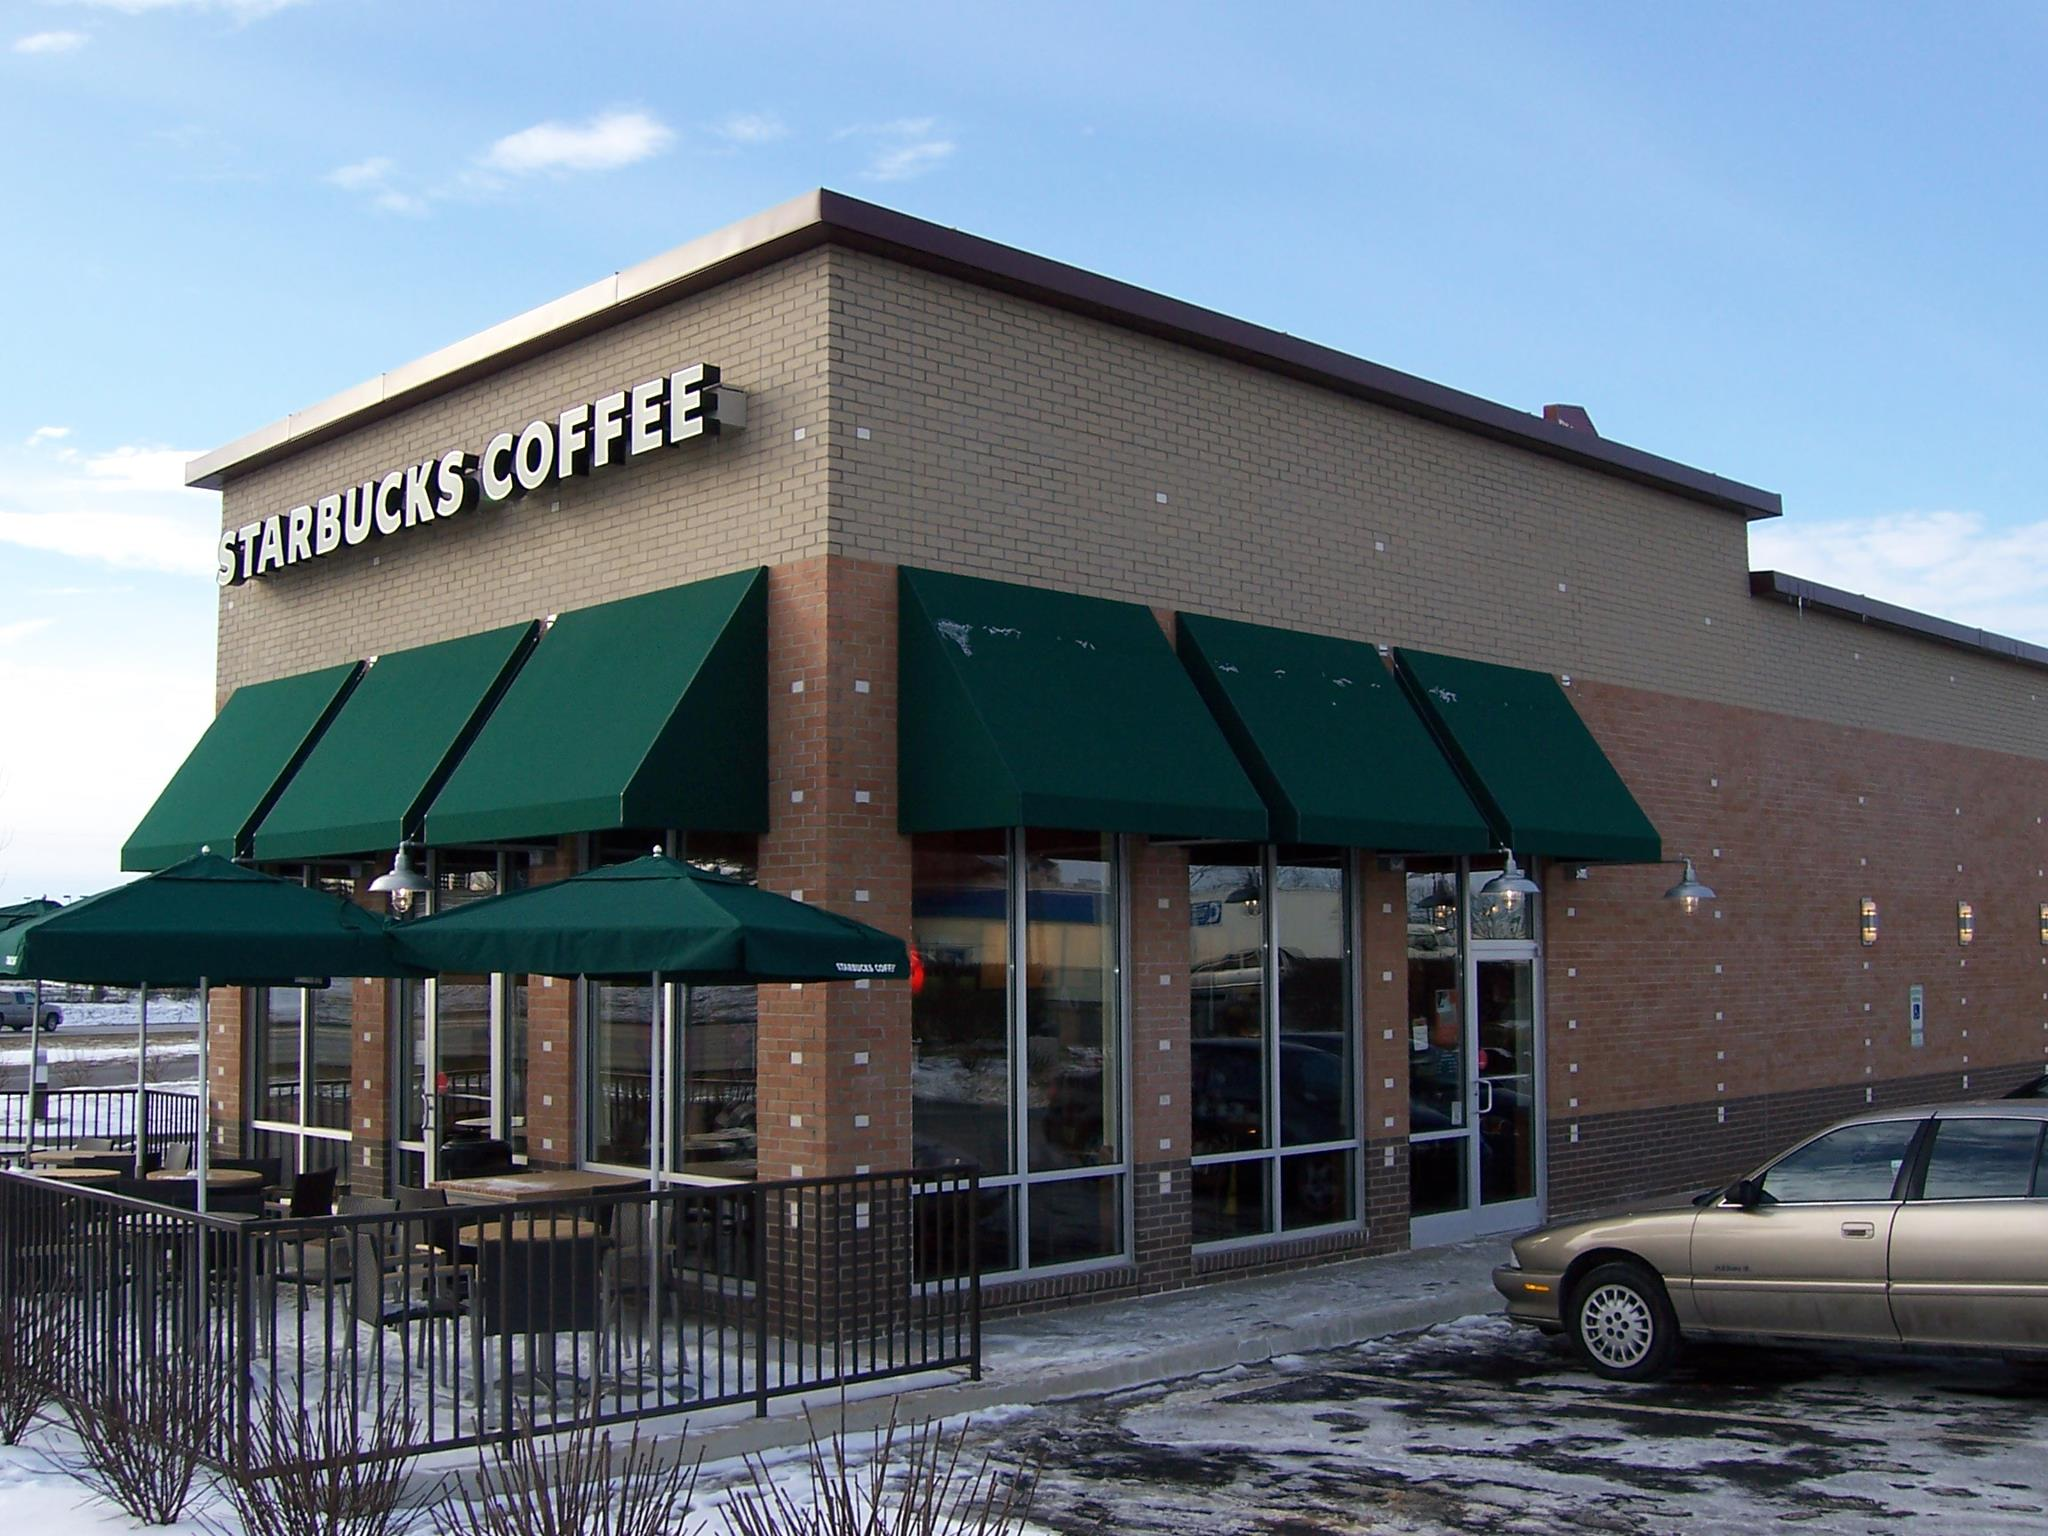 Commercial Glass - Starbucks